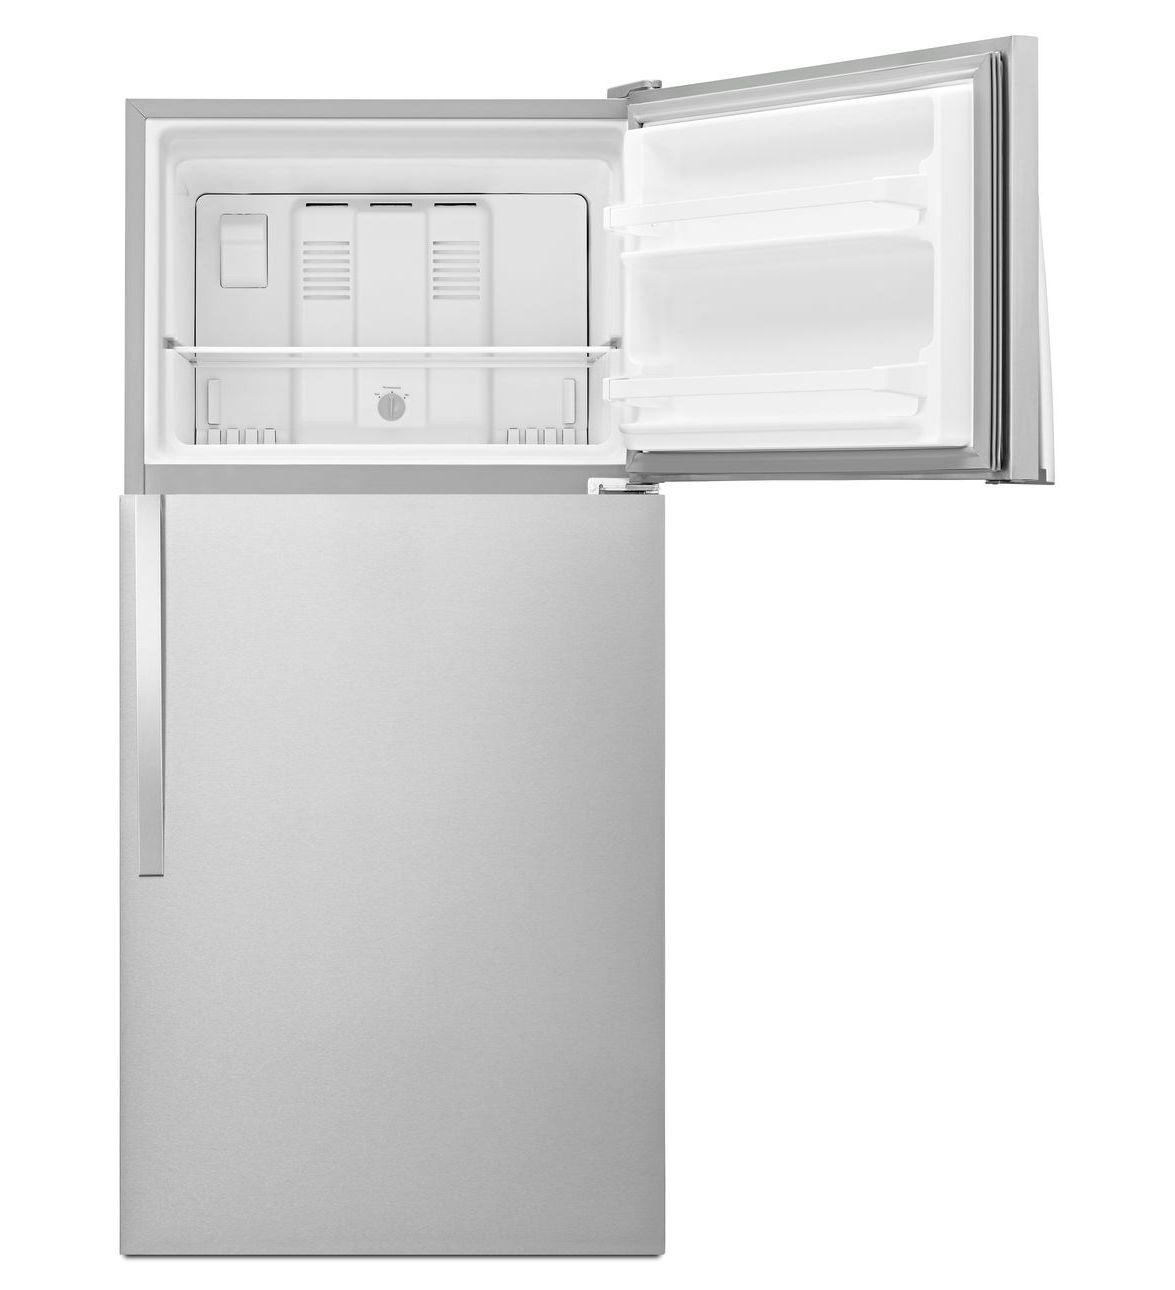 Whirlpool 30 Inch Top-Freezer Refrigerator With 18.2 Cu